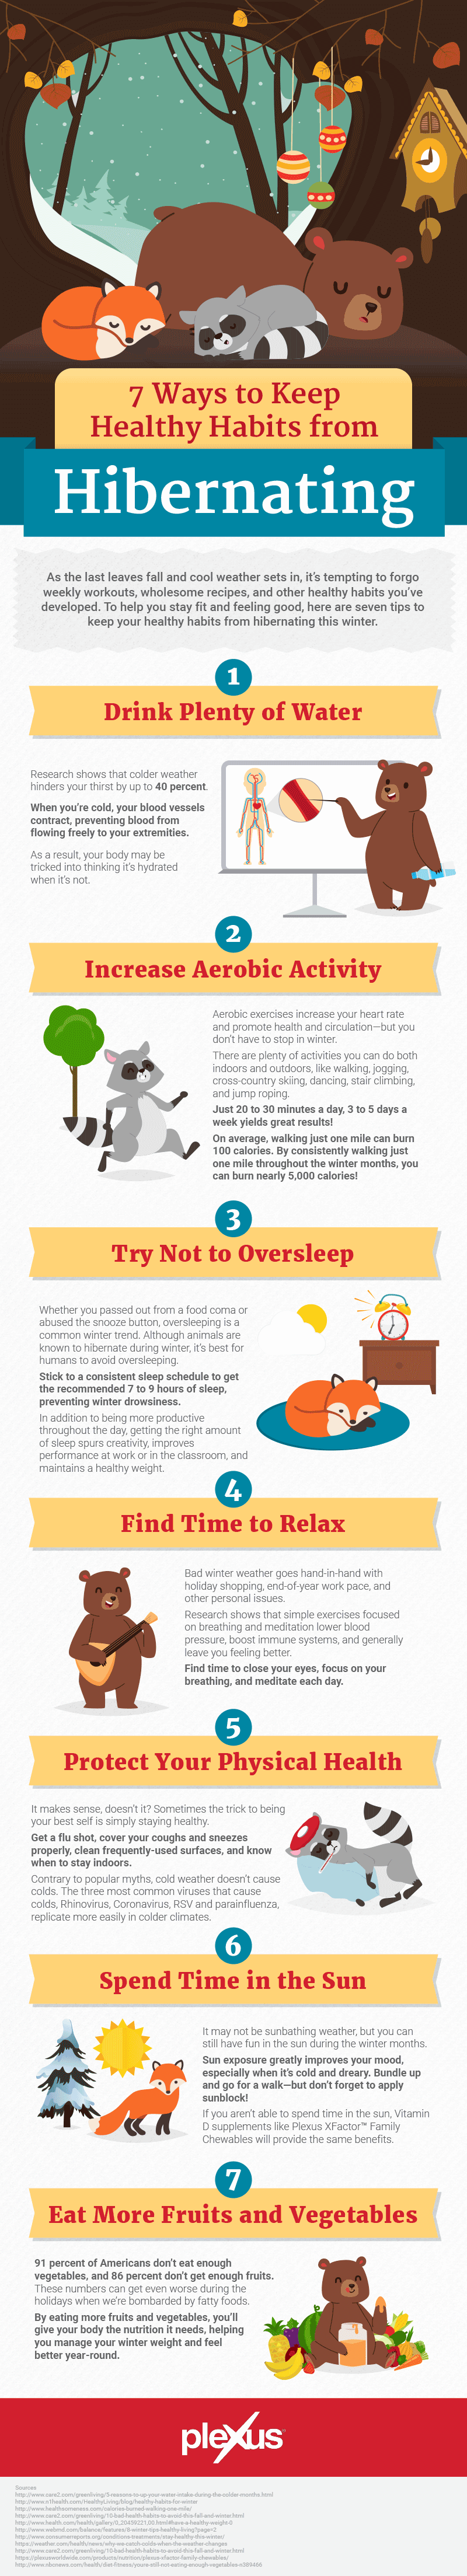 To help you stay fit and feeling good, here are seven tips to keep your healthy habits from hibernating this winter.